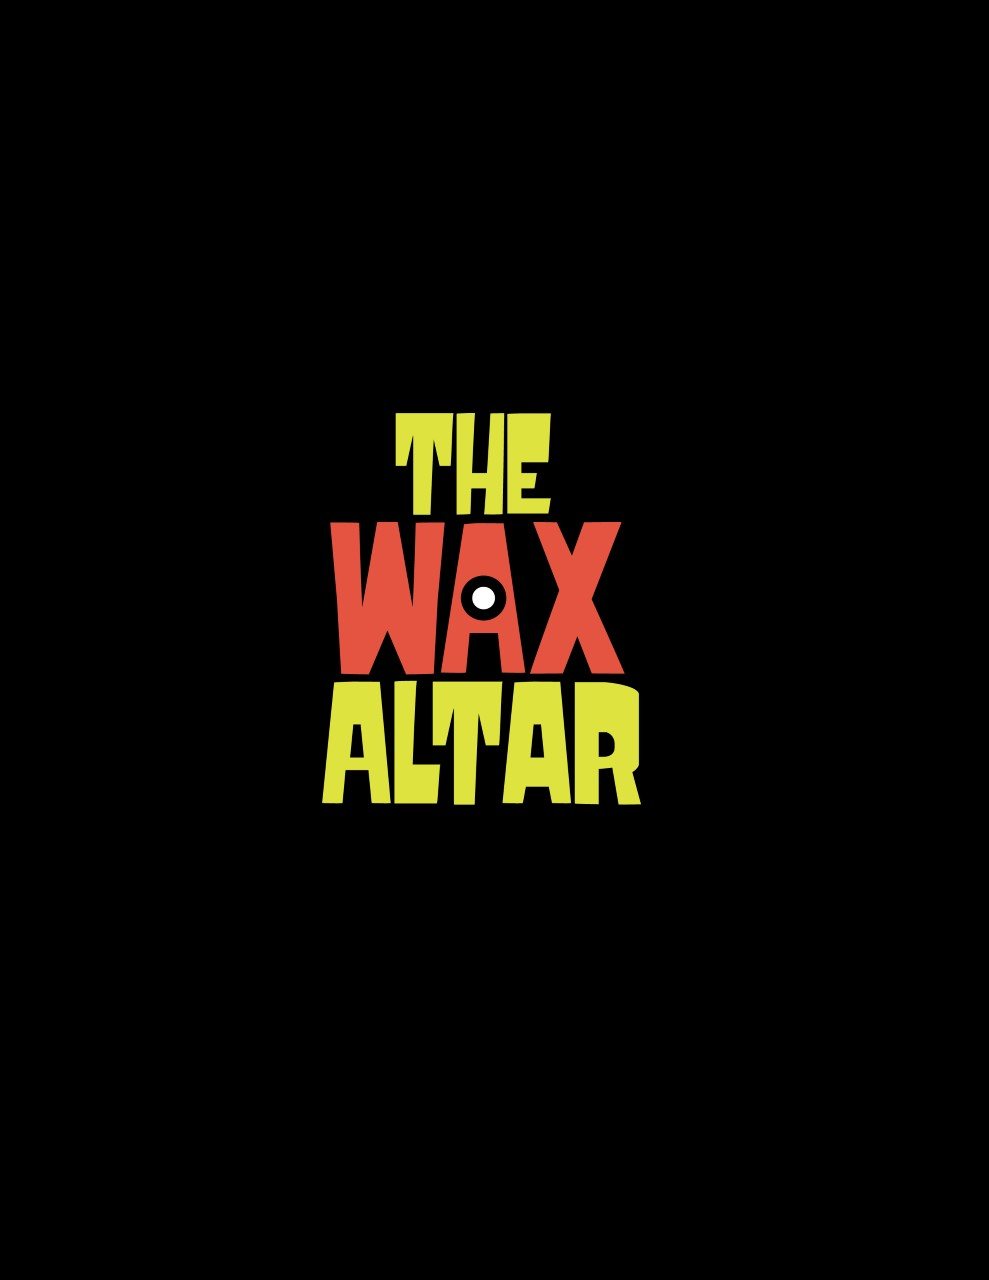 Art for Wax Altar - The Power of Trancedance by The Wax Altar